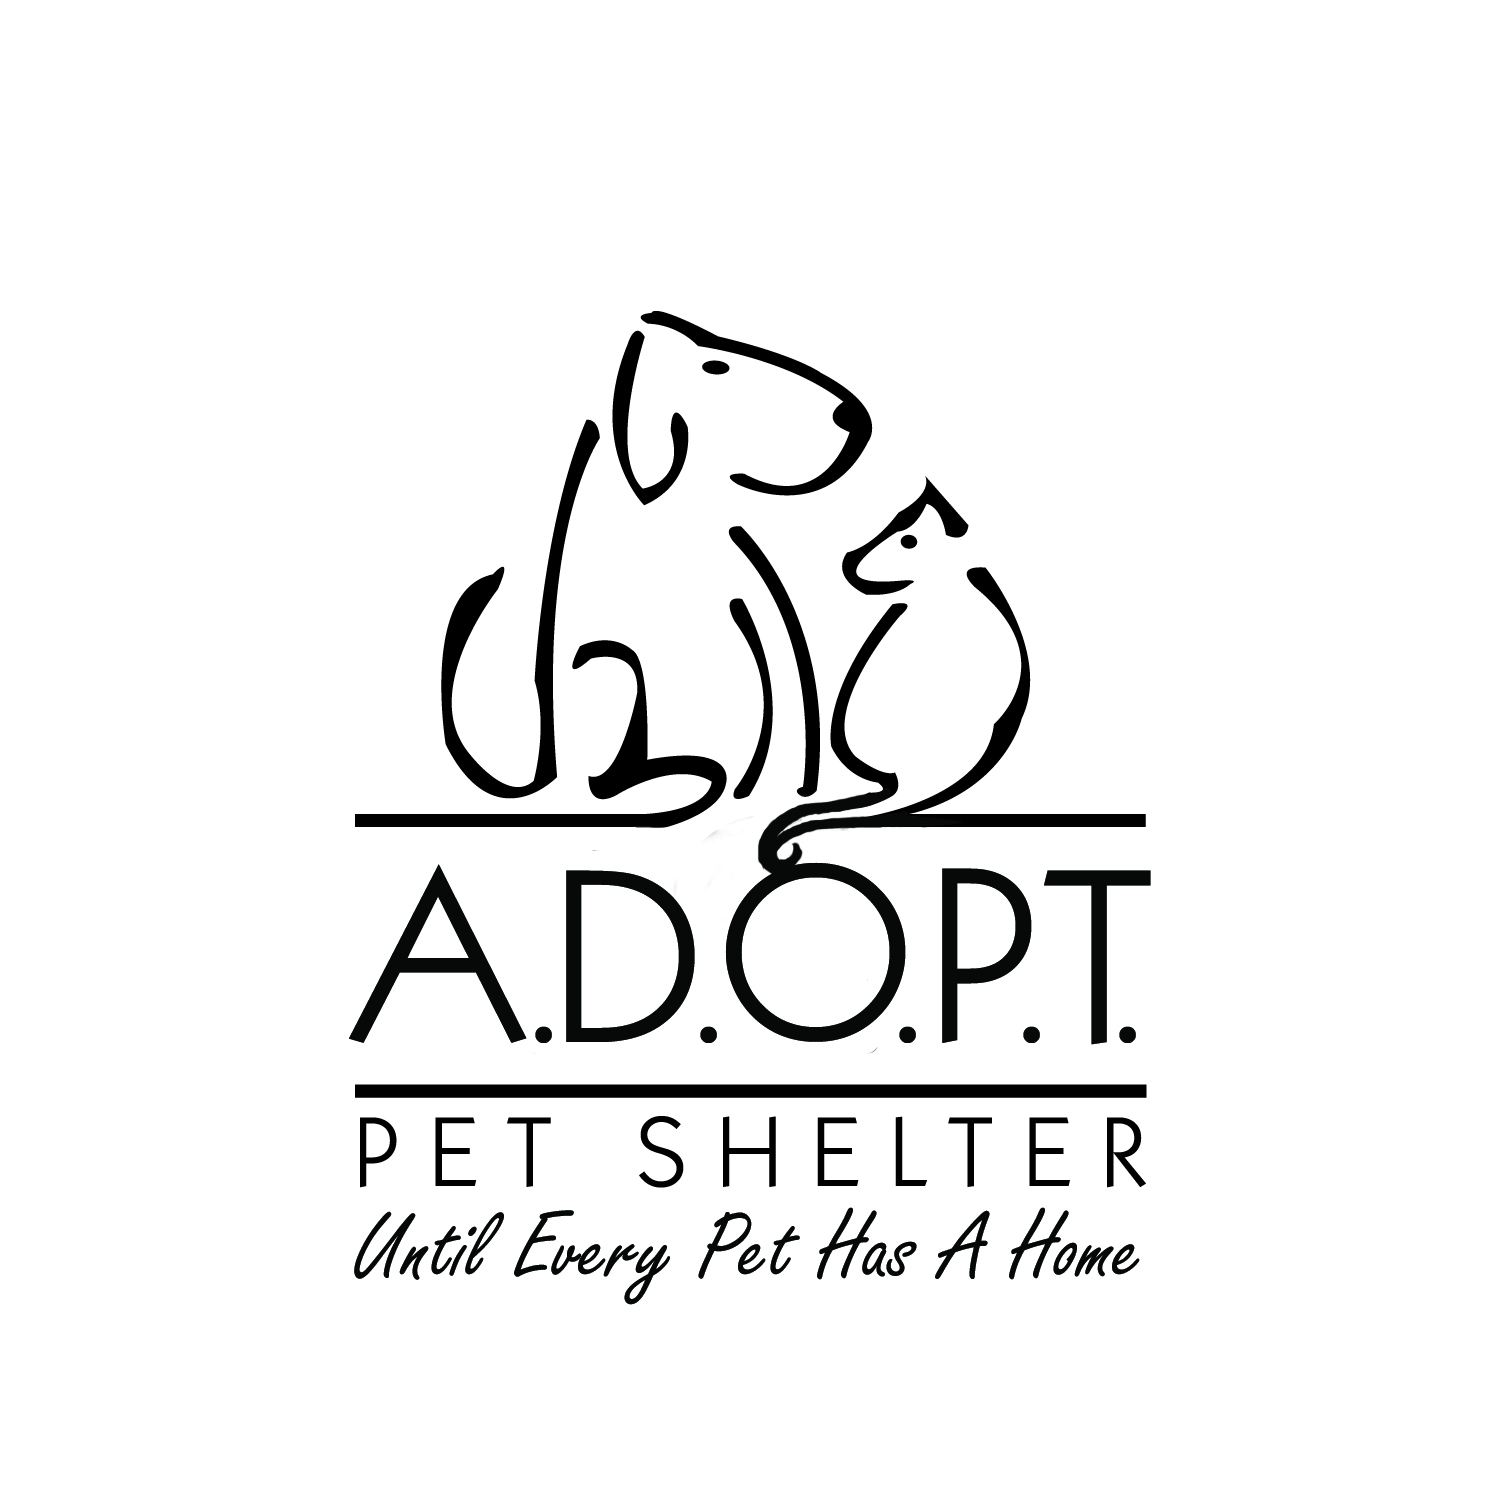 A D O P T Pet Shelter fers Affordable Spay Neuter for Pets of